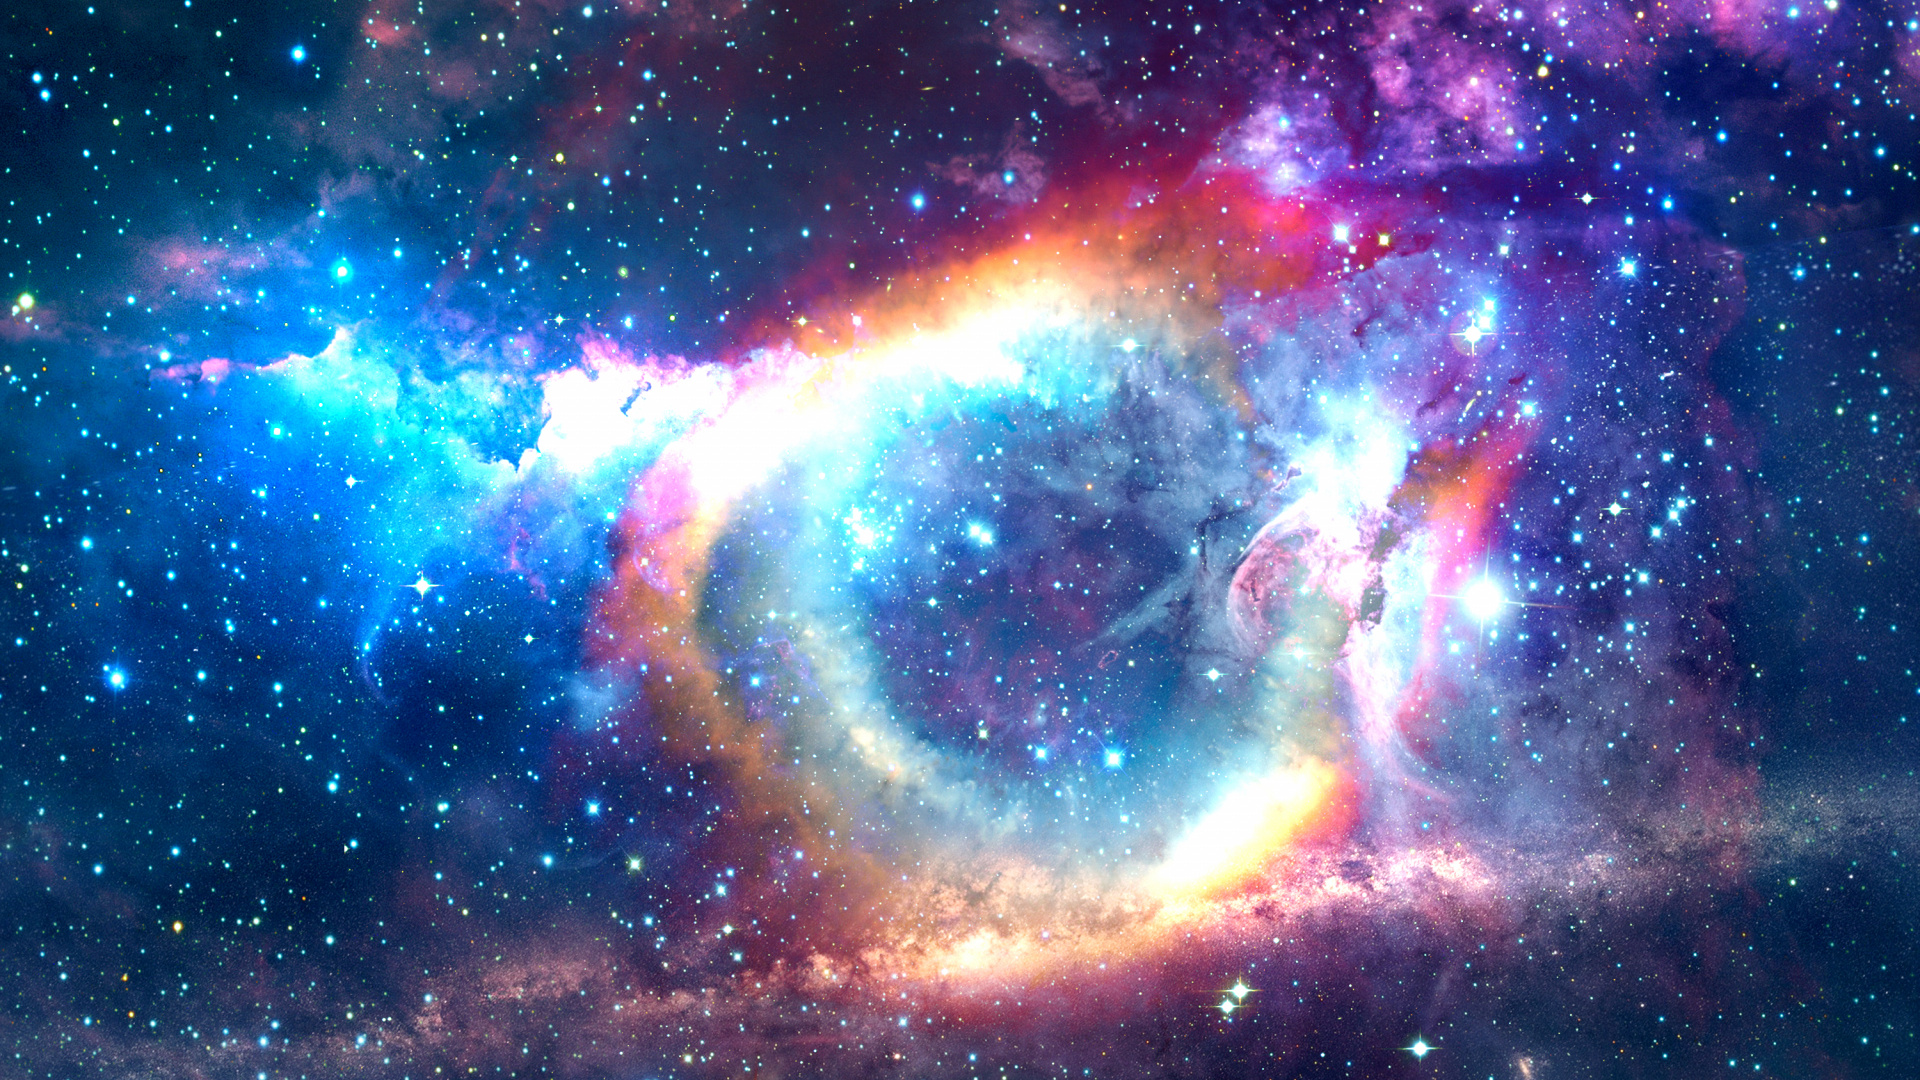 Space Background - 1920x1080 - Download HD Wallpaper ...